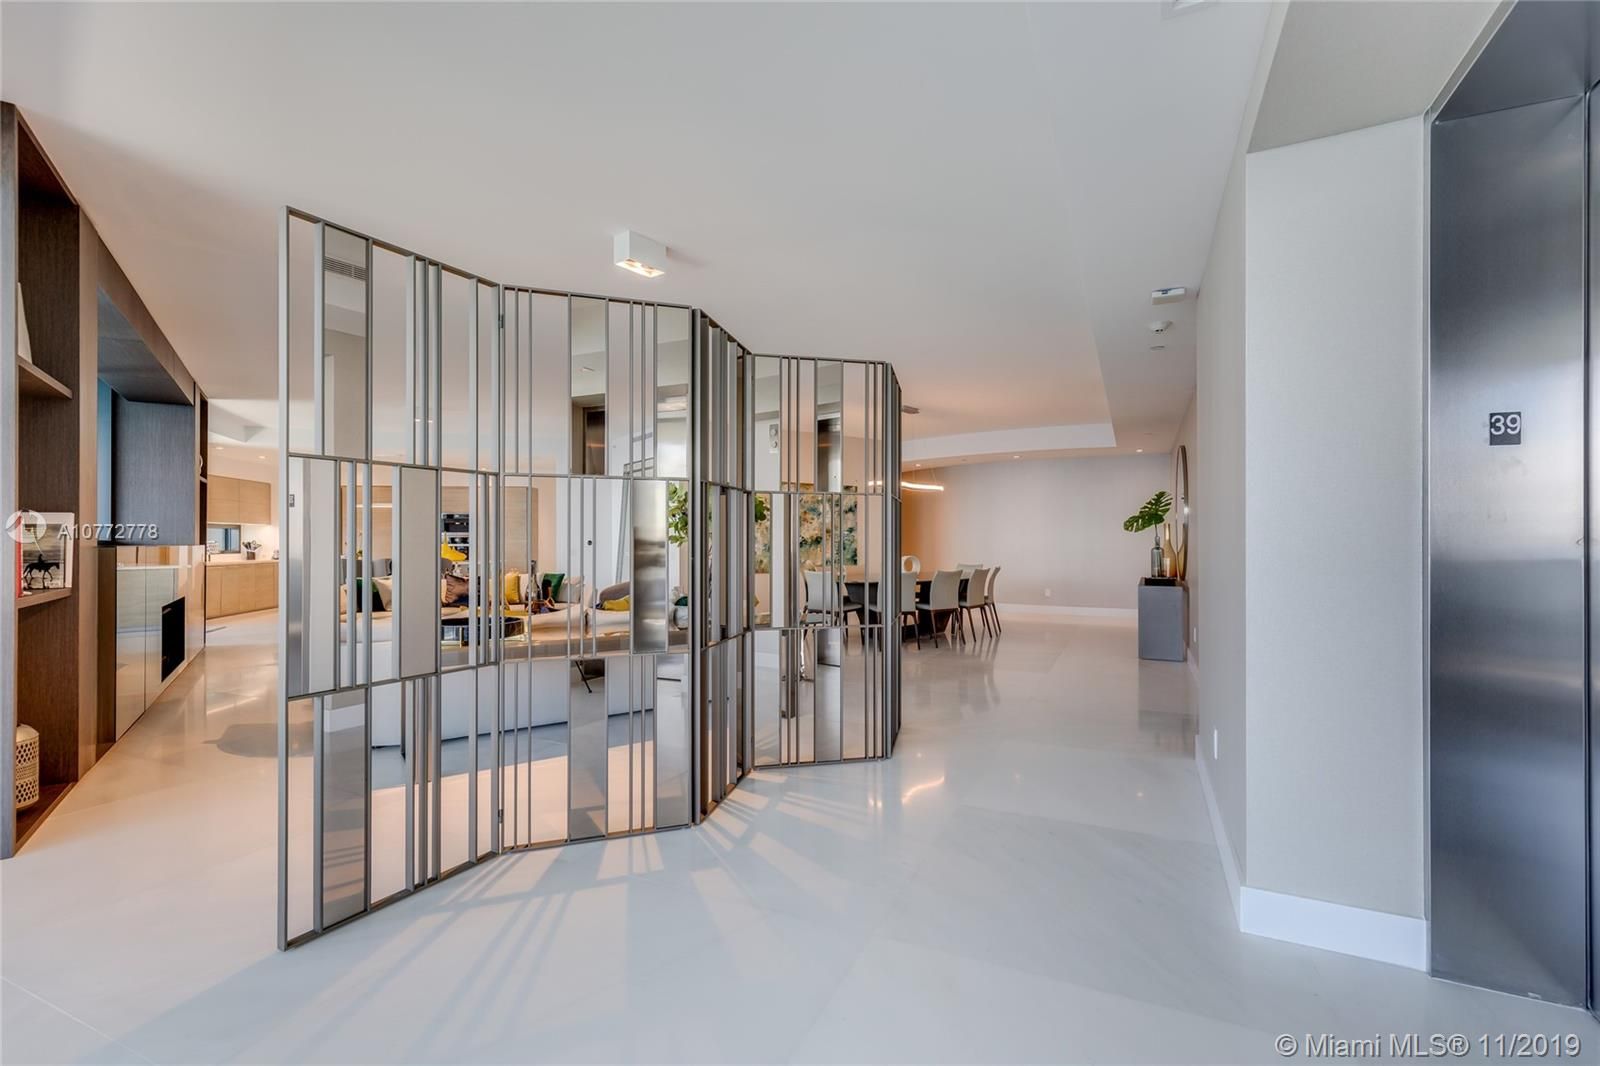 18555 Collins Ave, Unit #3901 Luxury Real Estate